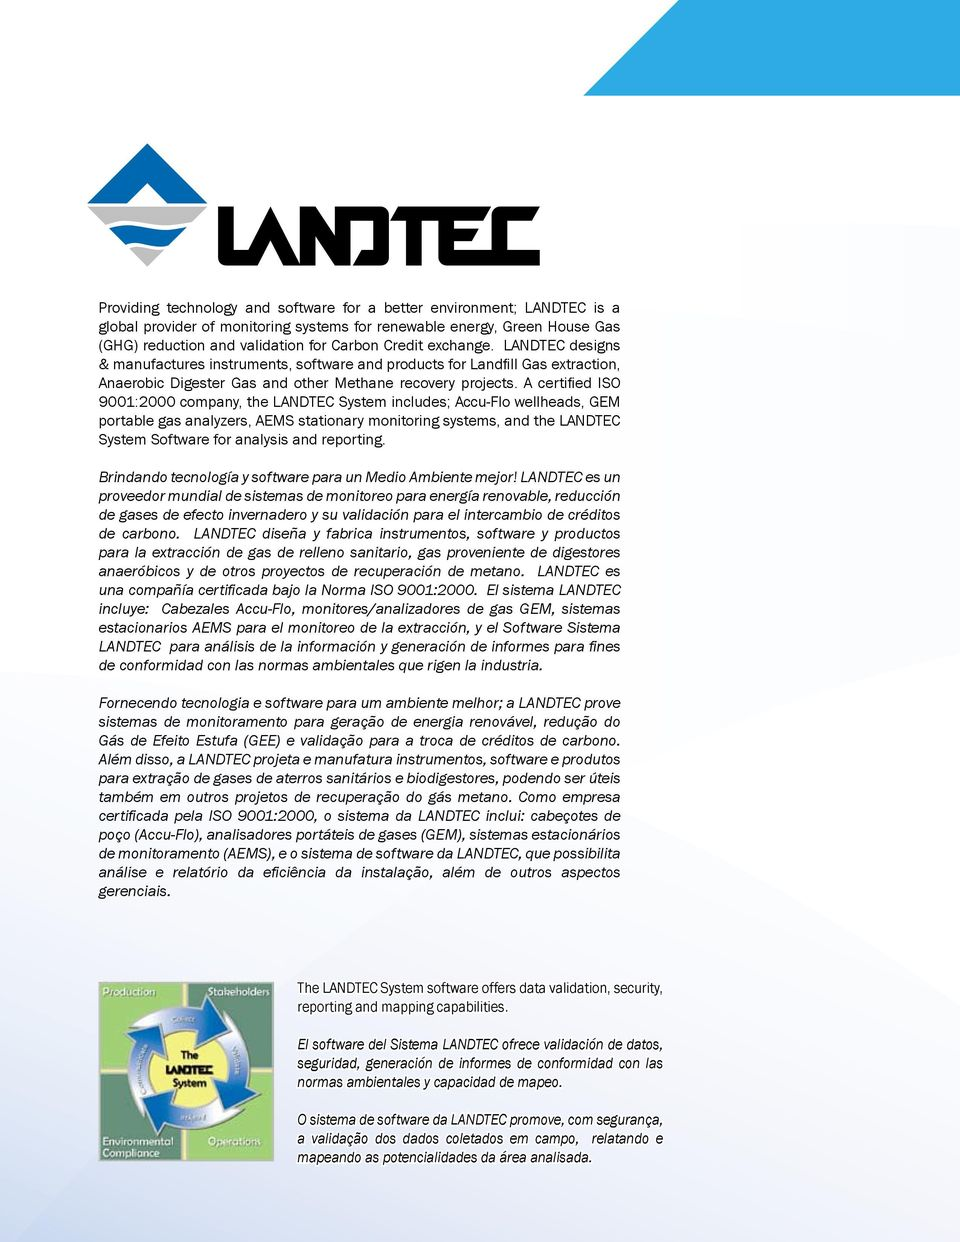 A certified ISO 9001:2000 company, the LANDTEC System includes; Accu-Flo wellheads, GEM portable gas analyzers, AEMS stationary monitoring systems, and the LANDTEC System Software for analysis and